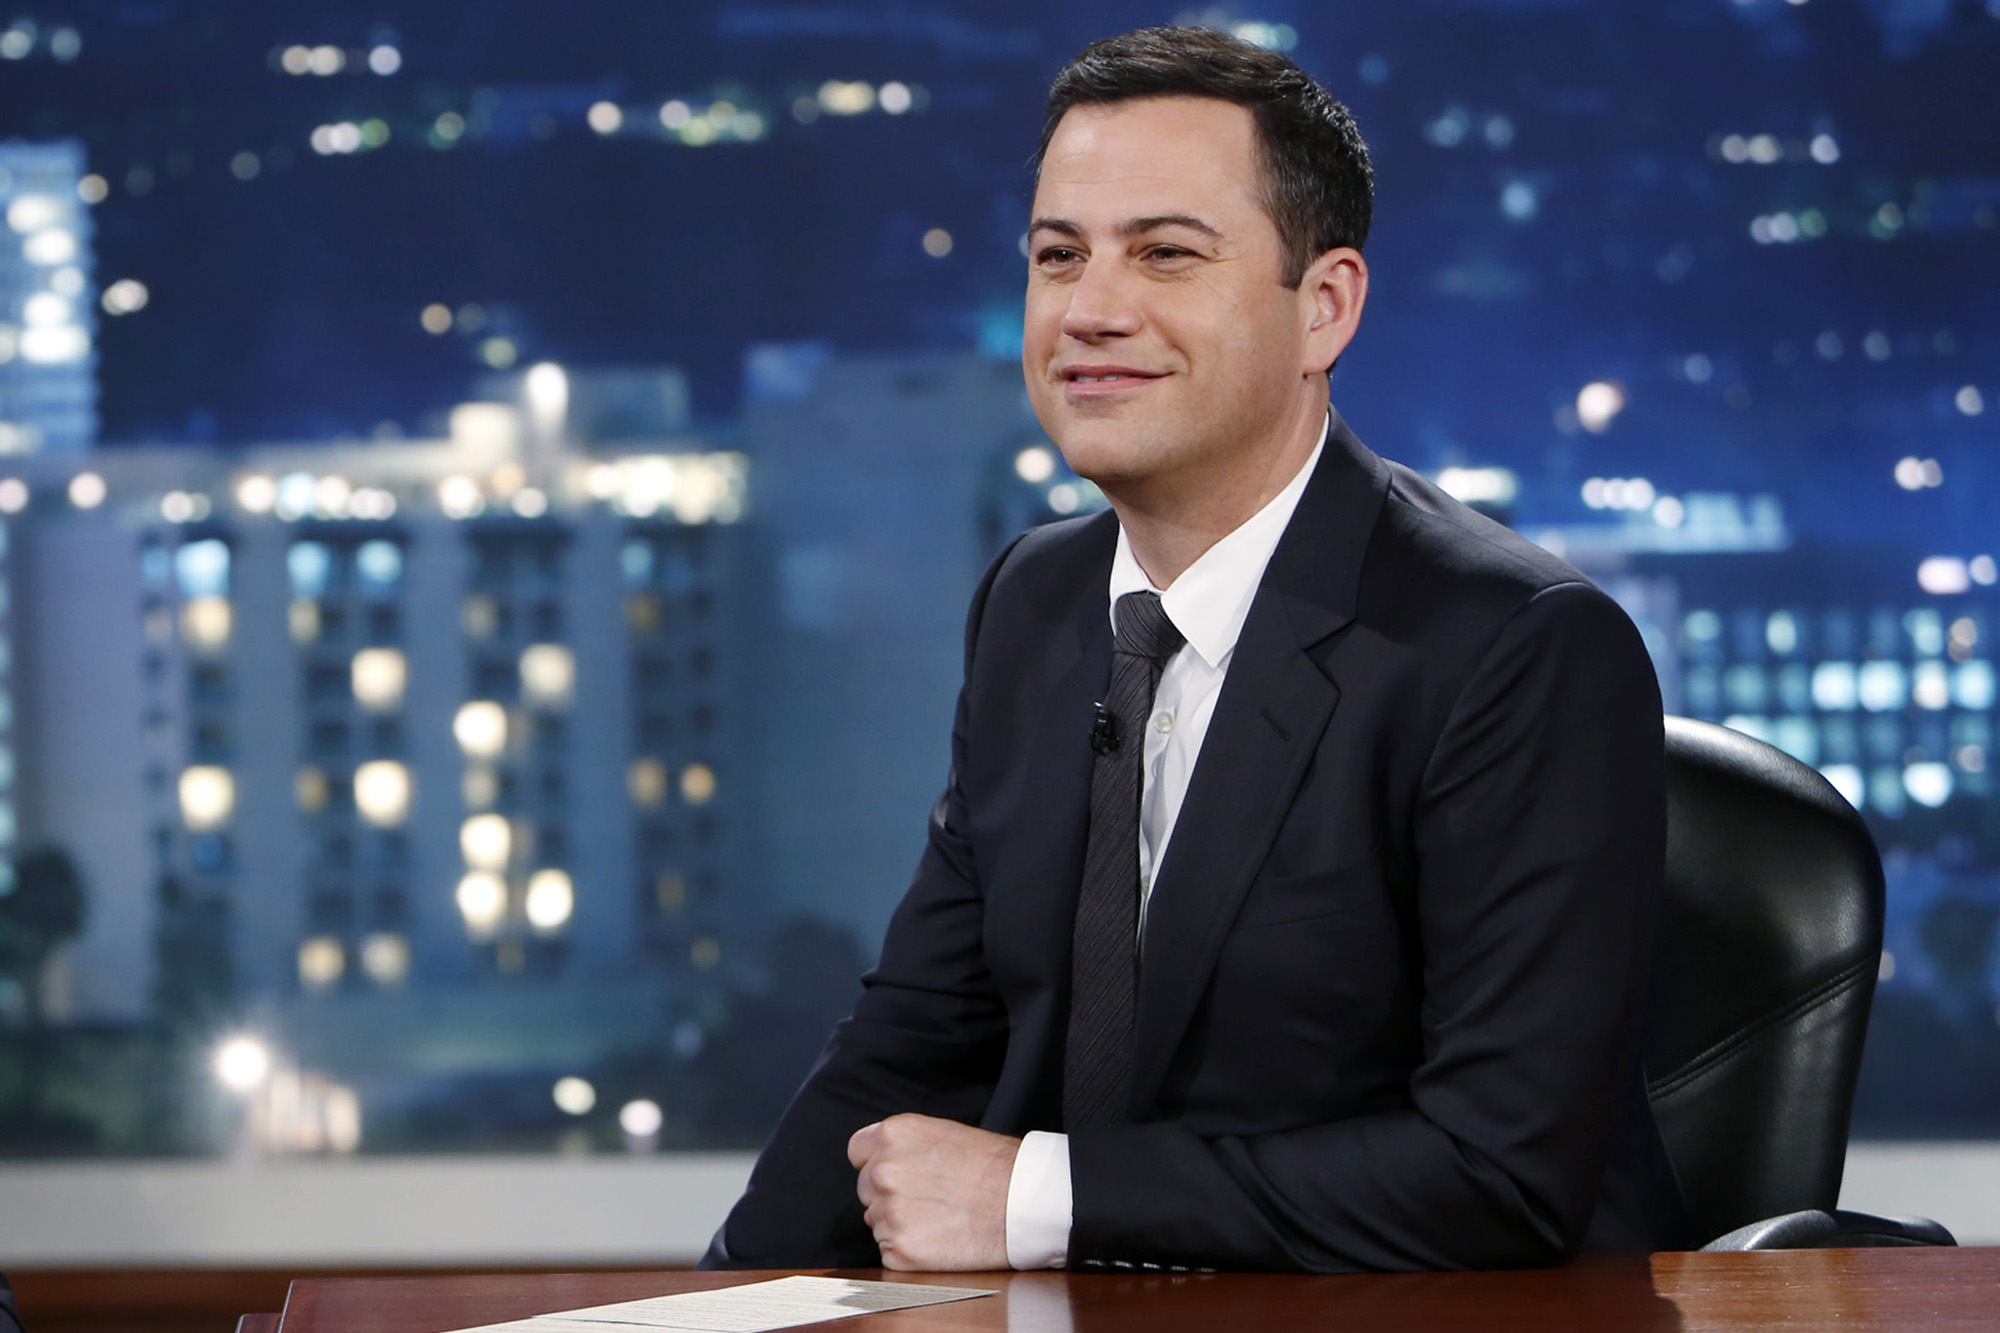 """In ABC's """"Jimmy Kimmel Live"""" show that aired on Oct. 16, a boy shouted, """"Kill everyone in China!"""" when Kimmel asked how the United States should do about ..."""